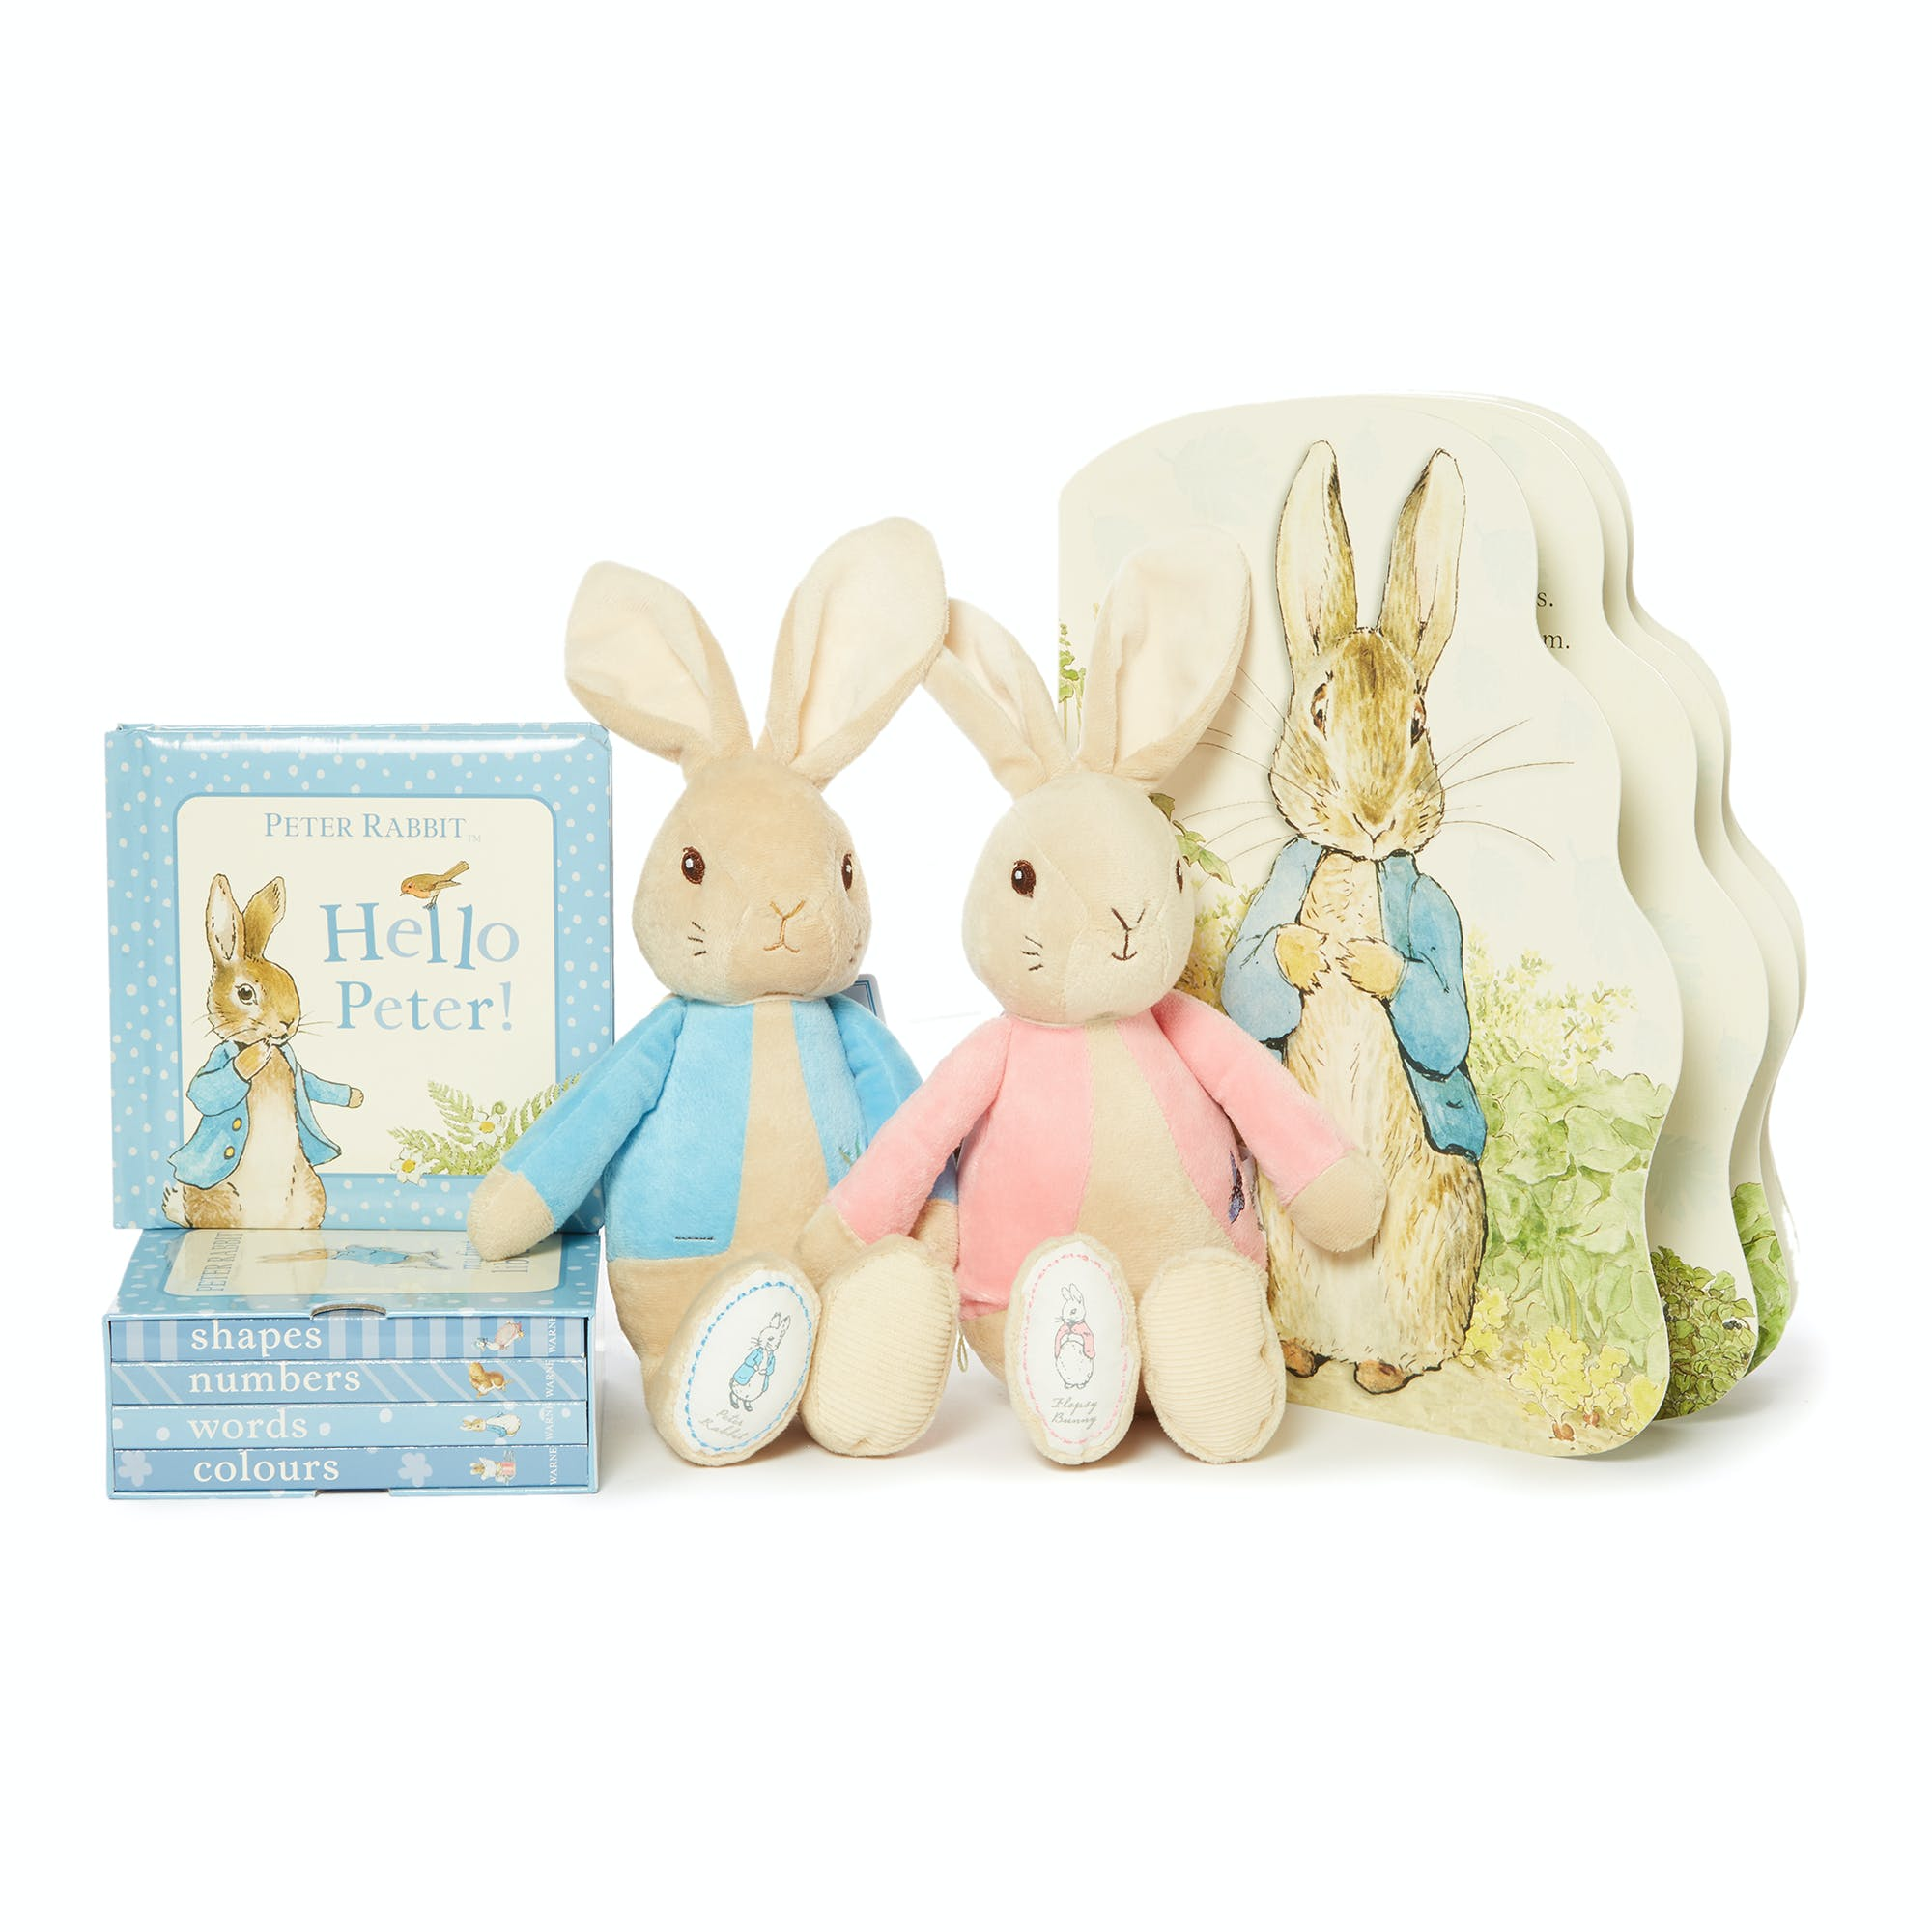 Peter Rabbit my first library book collection 2001001, My first Peter Rabbit soft toy 8003005, My first Flopsy Bunny soft toy 8003006, Peter Rabbit board book 40110.